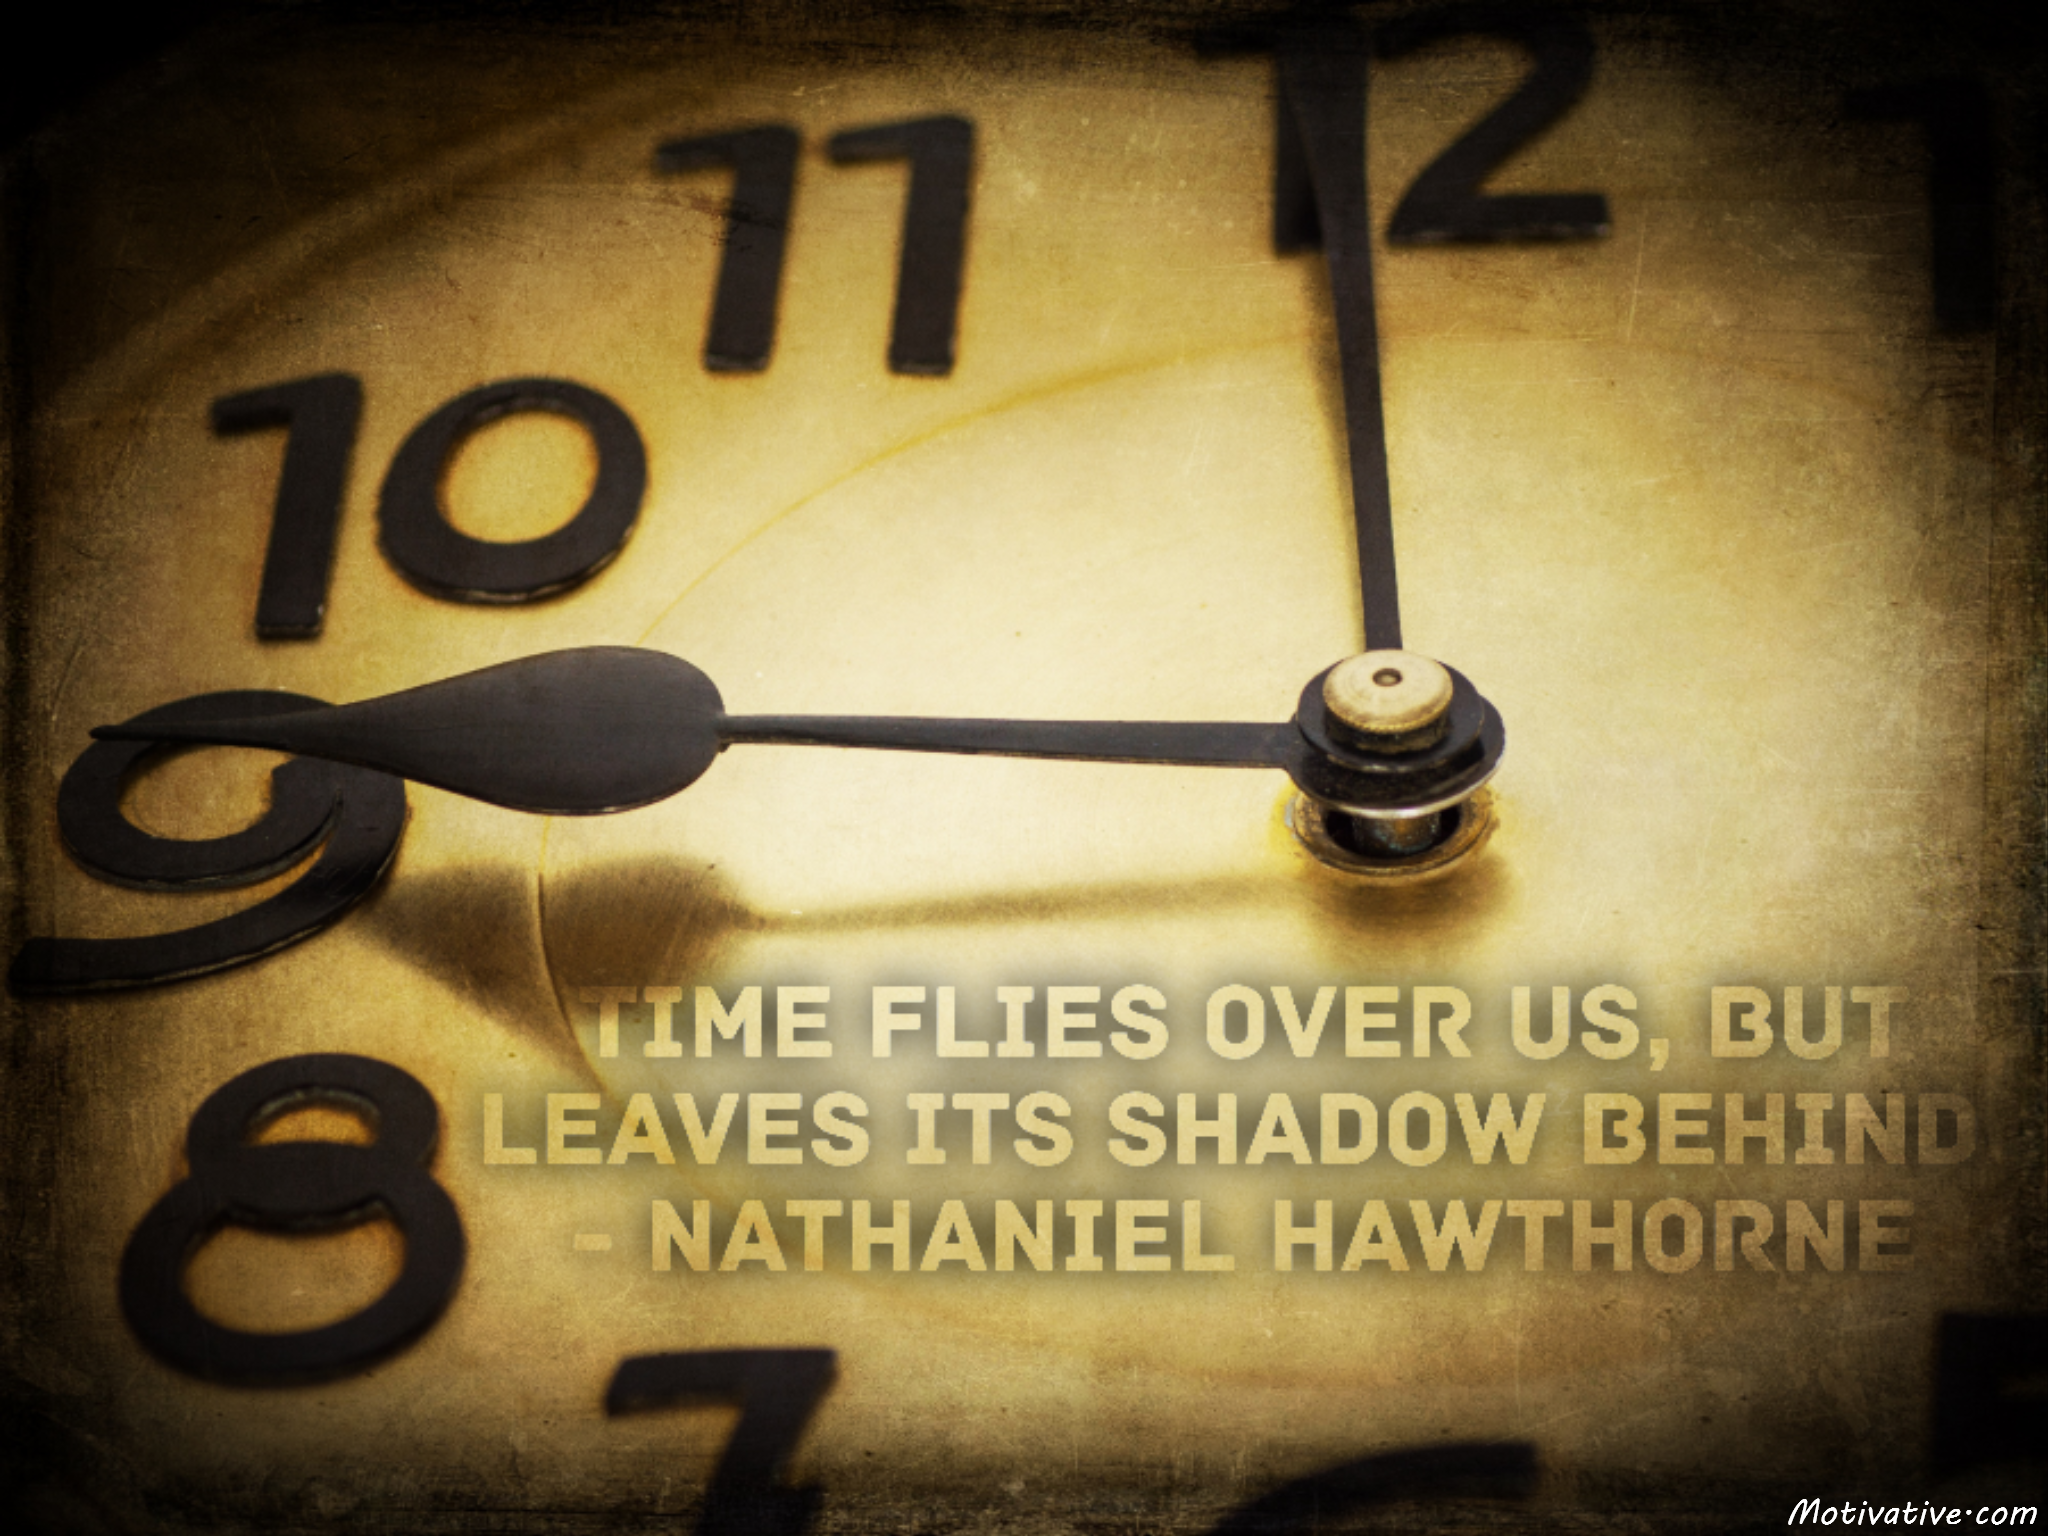 Time flies over us, but leaves its shadow behind. – Nathaniel Hawthorne